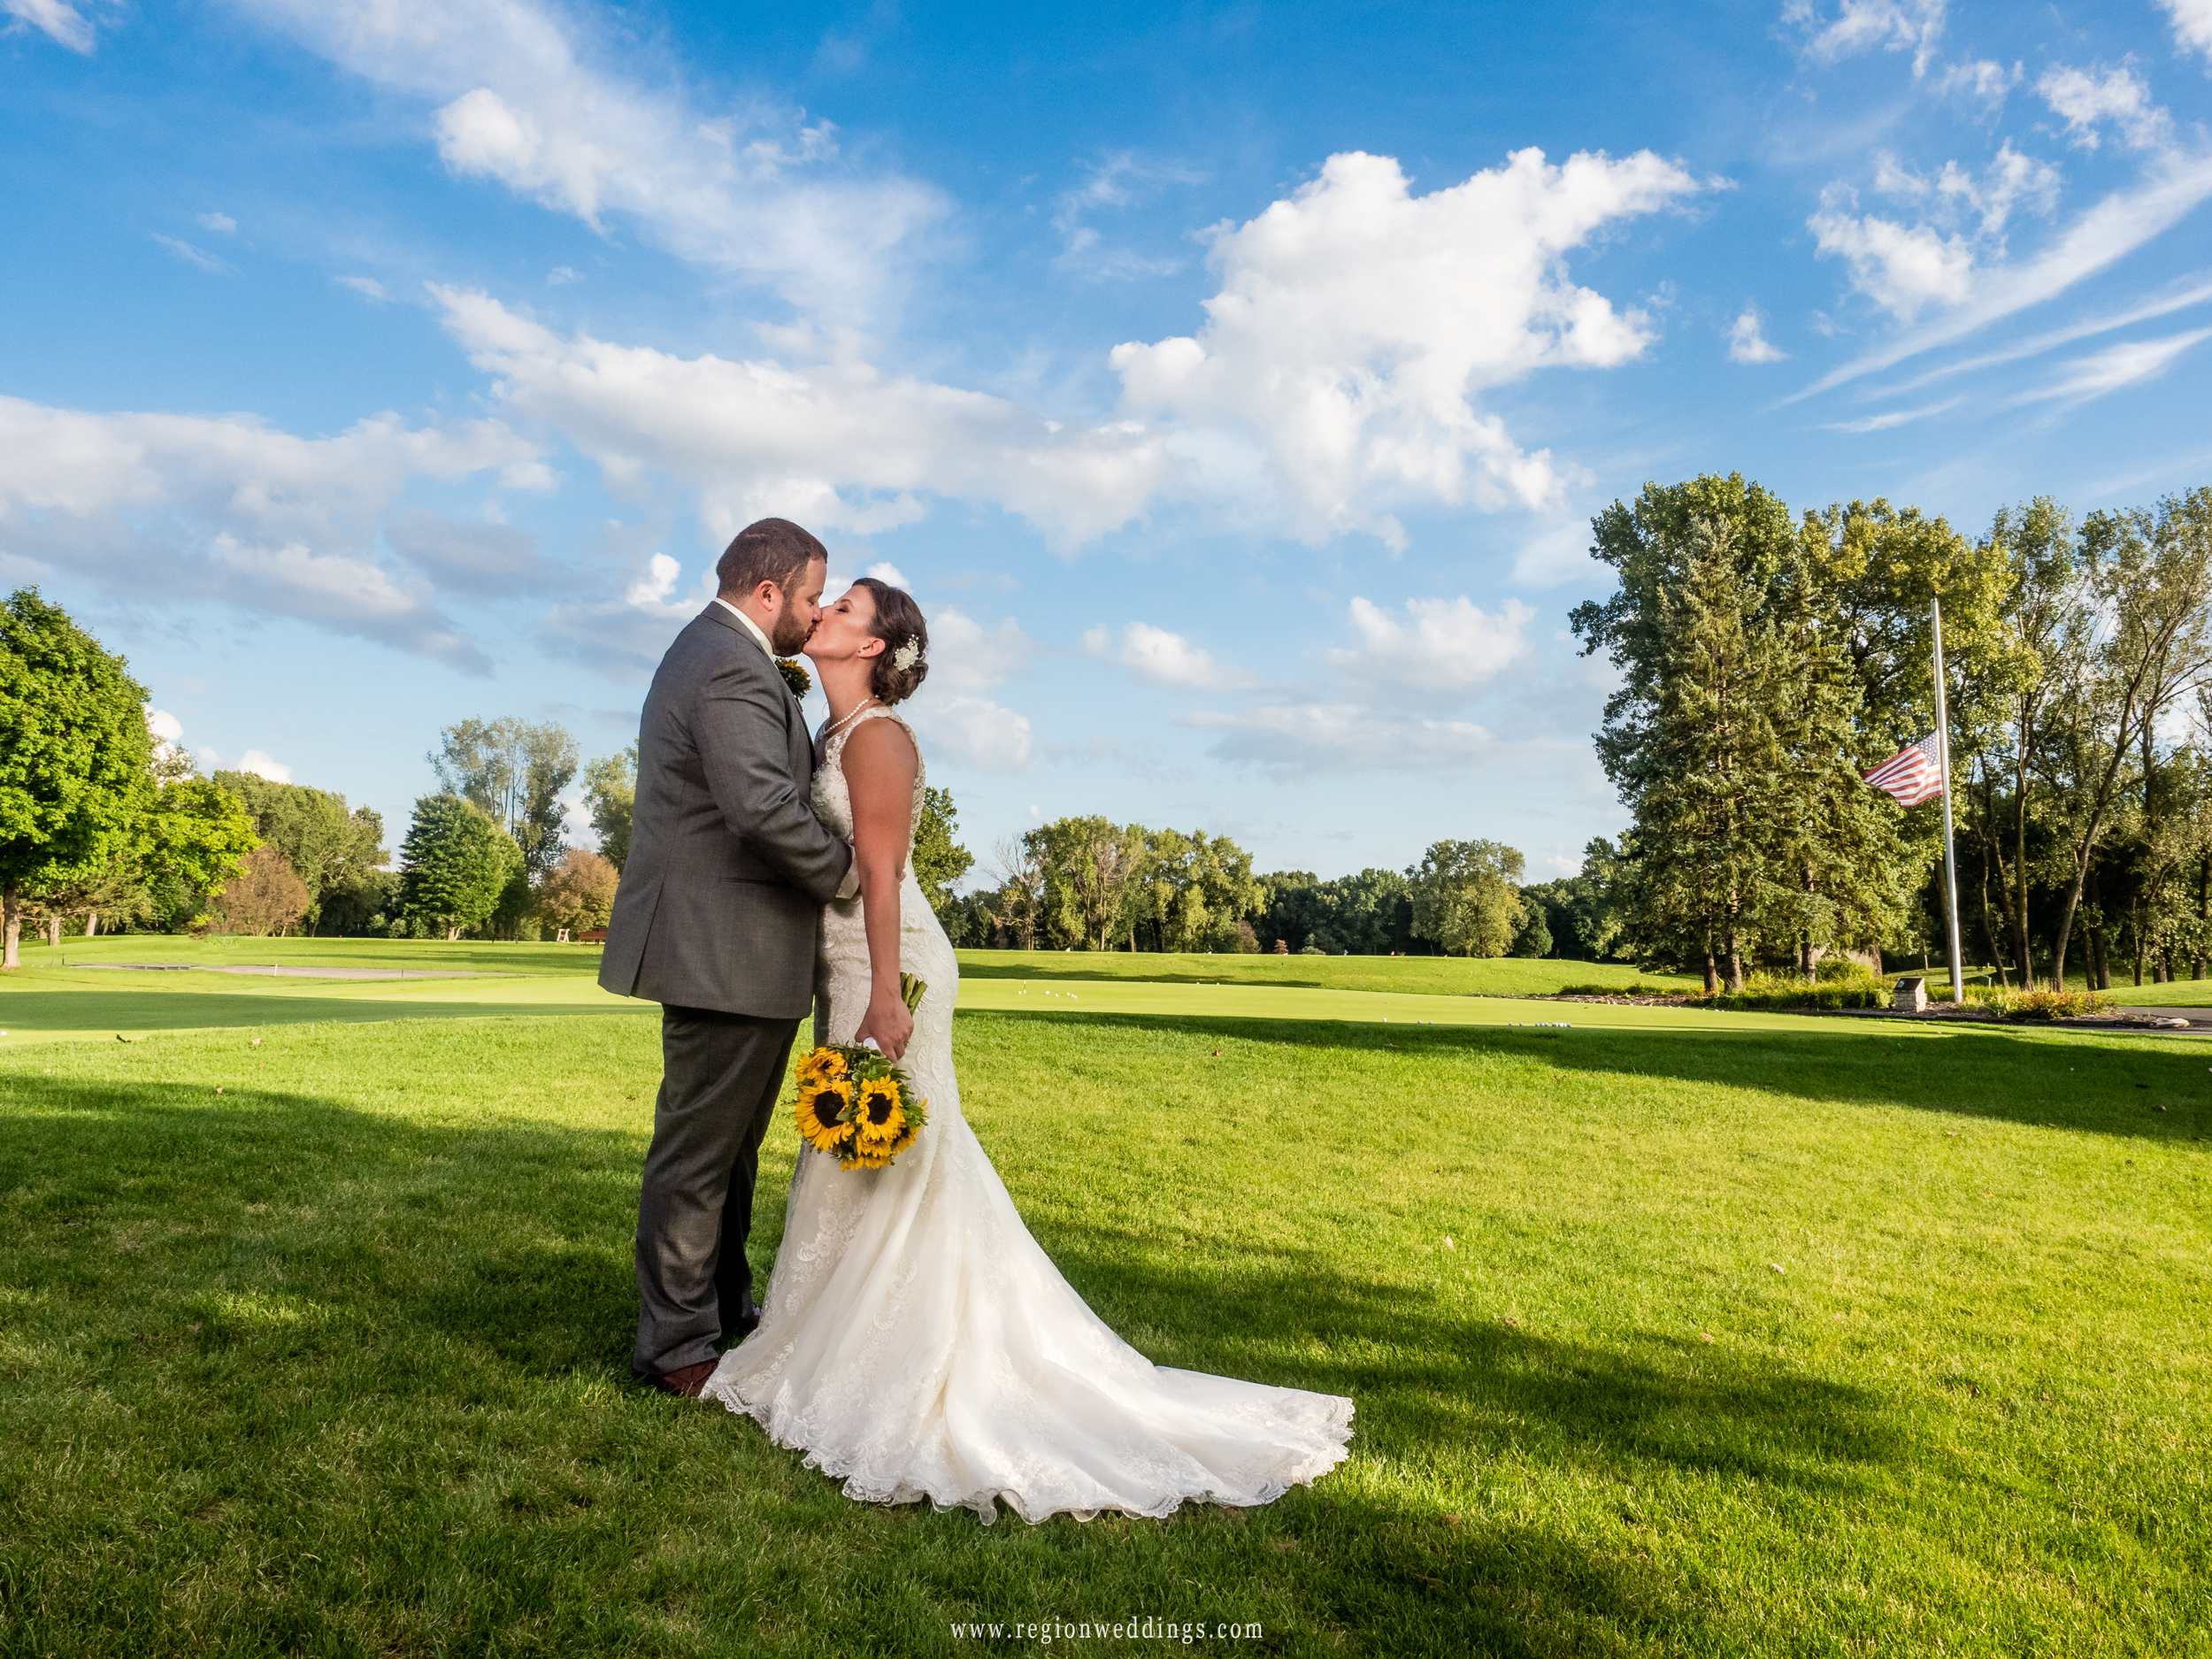 Kiss on the golf course under a beautiful blue sky.